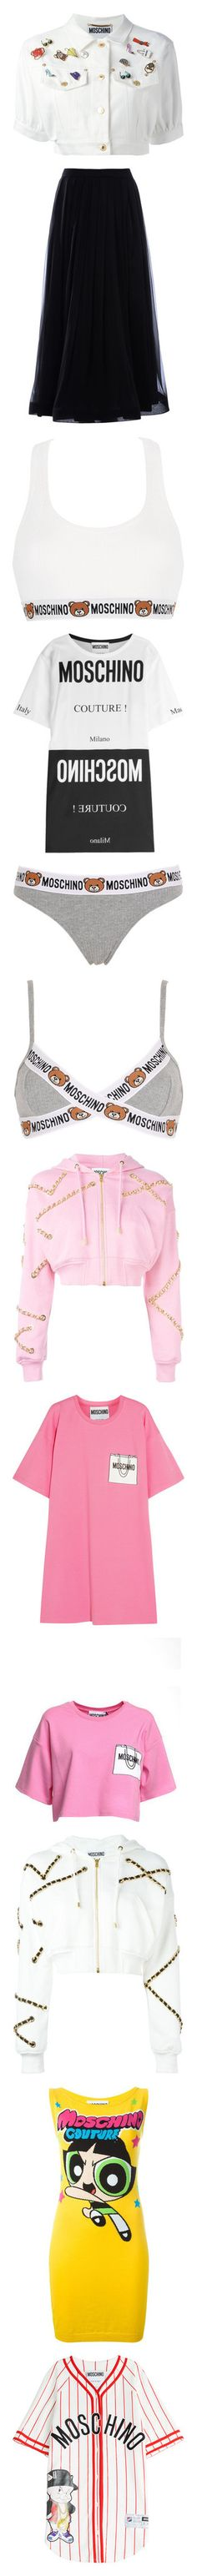 """""""Moschino"""" by melissa-piv ❤ liked on Polyvore featuring outerwear, jackets, tops, moschino, cropped jacket, white jean jacket, embellished jacket, embellished jean jacket, jean jacket and skirts"""